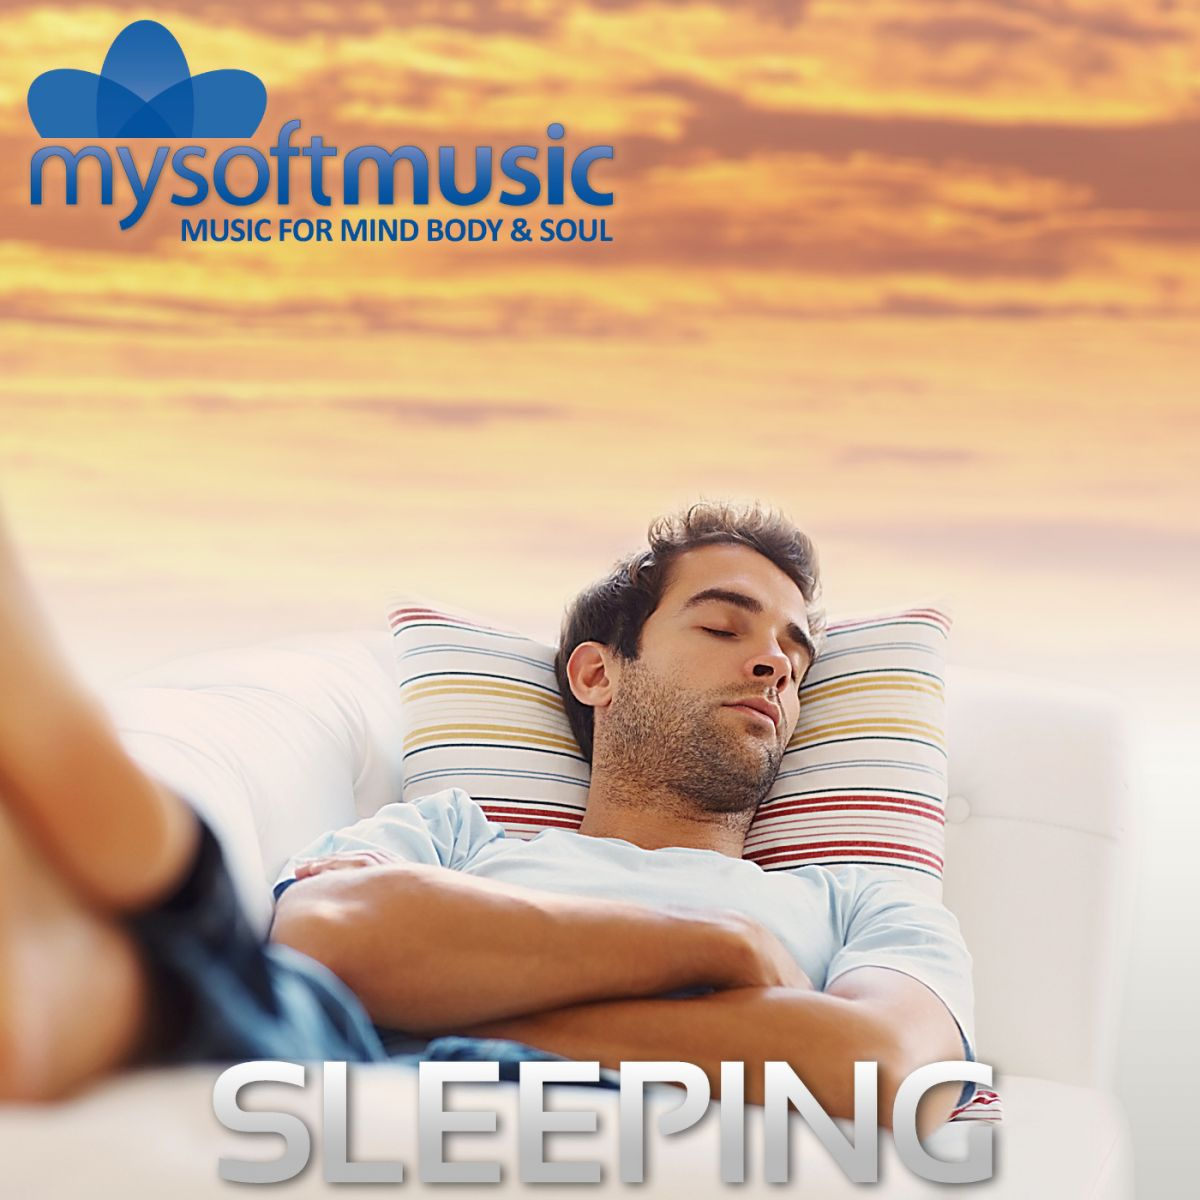 Sleeping music download mp3 | mysoftmusic